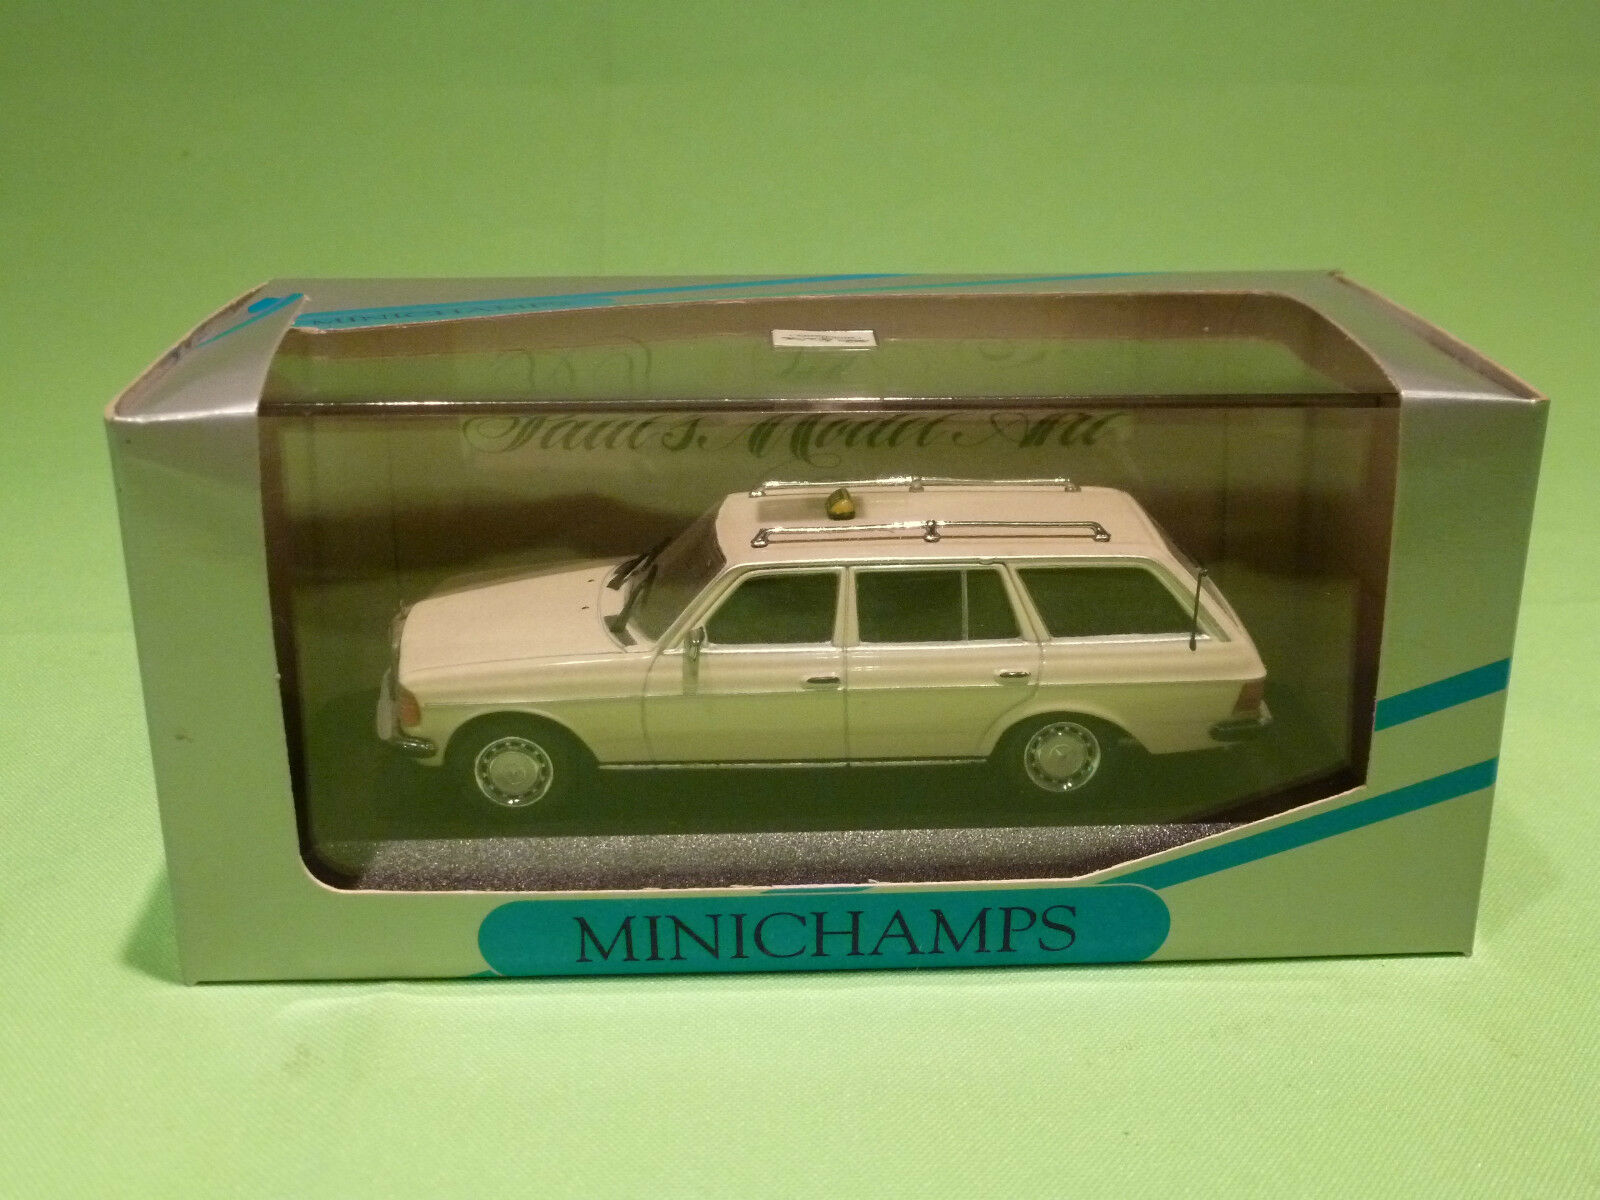 MINICHAMPS 1 43  MERCEDES BENZ W 123 KOMBI TAXI   - NEAR MINT   - IN BOX